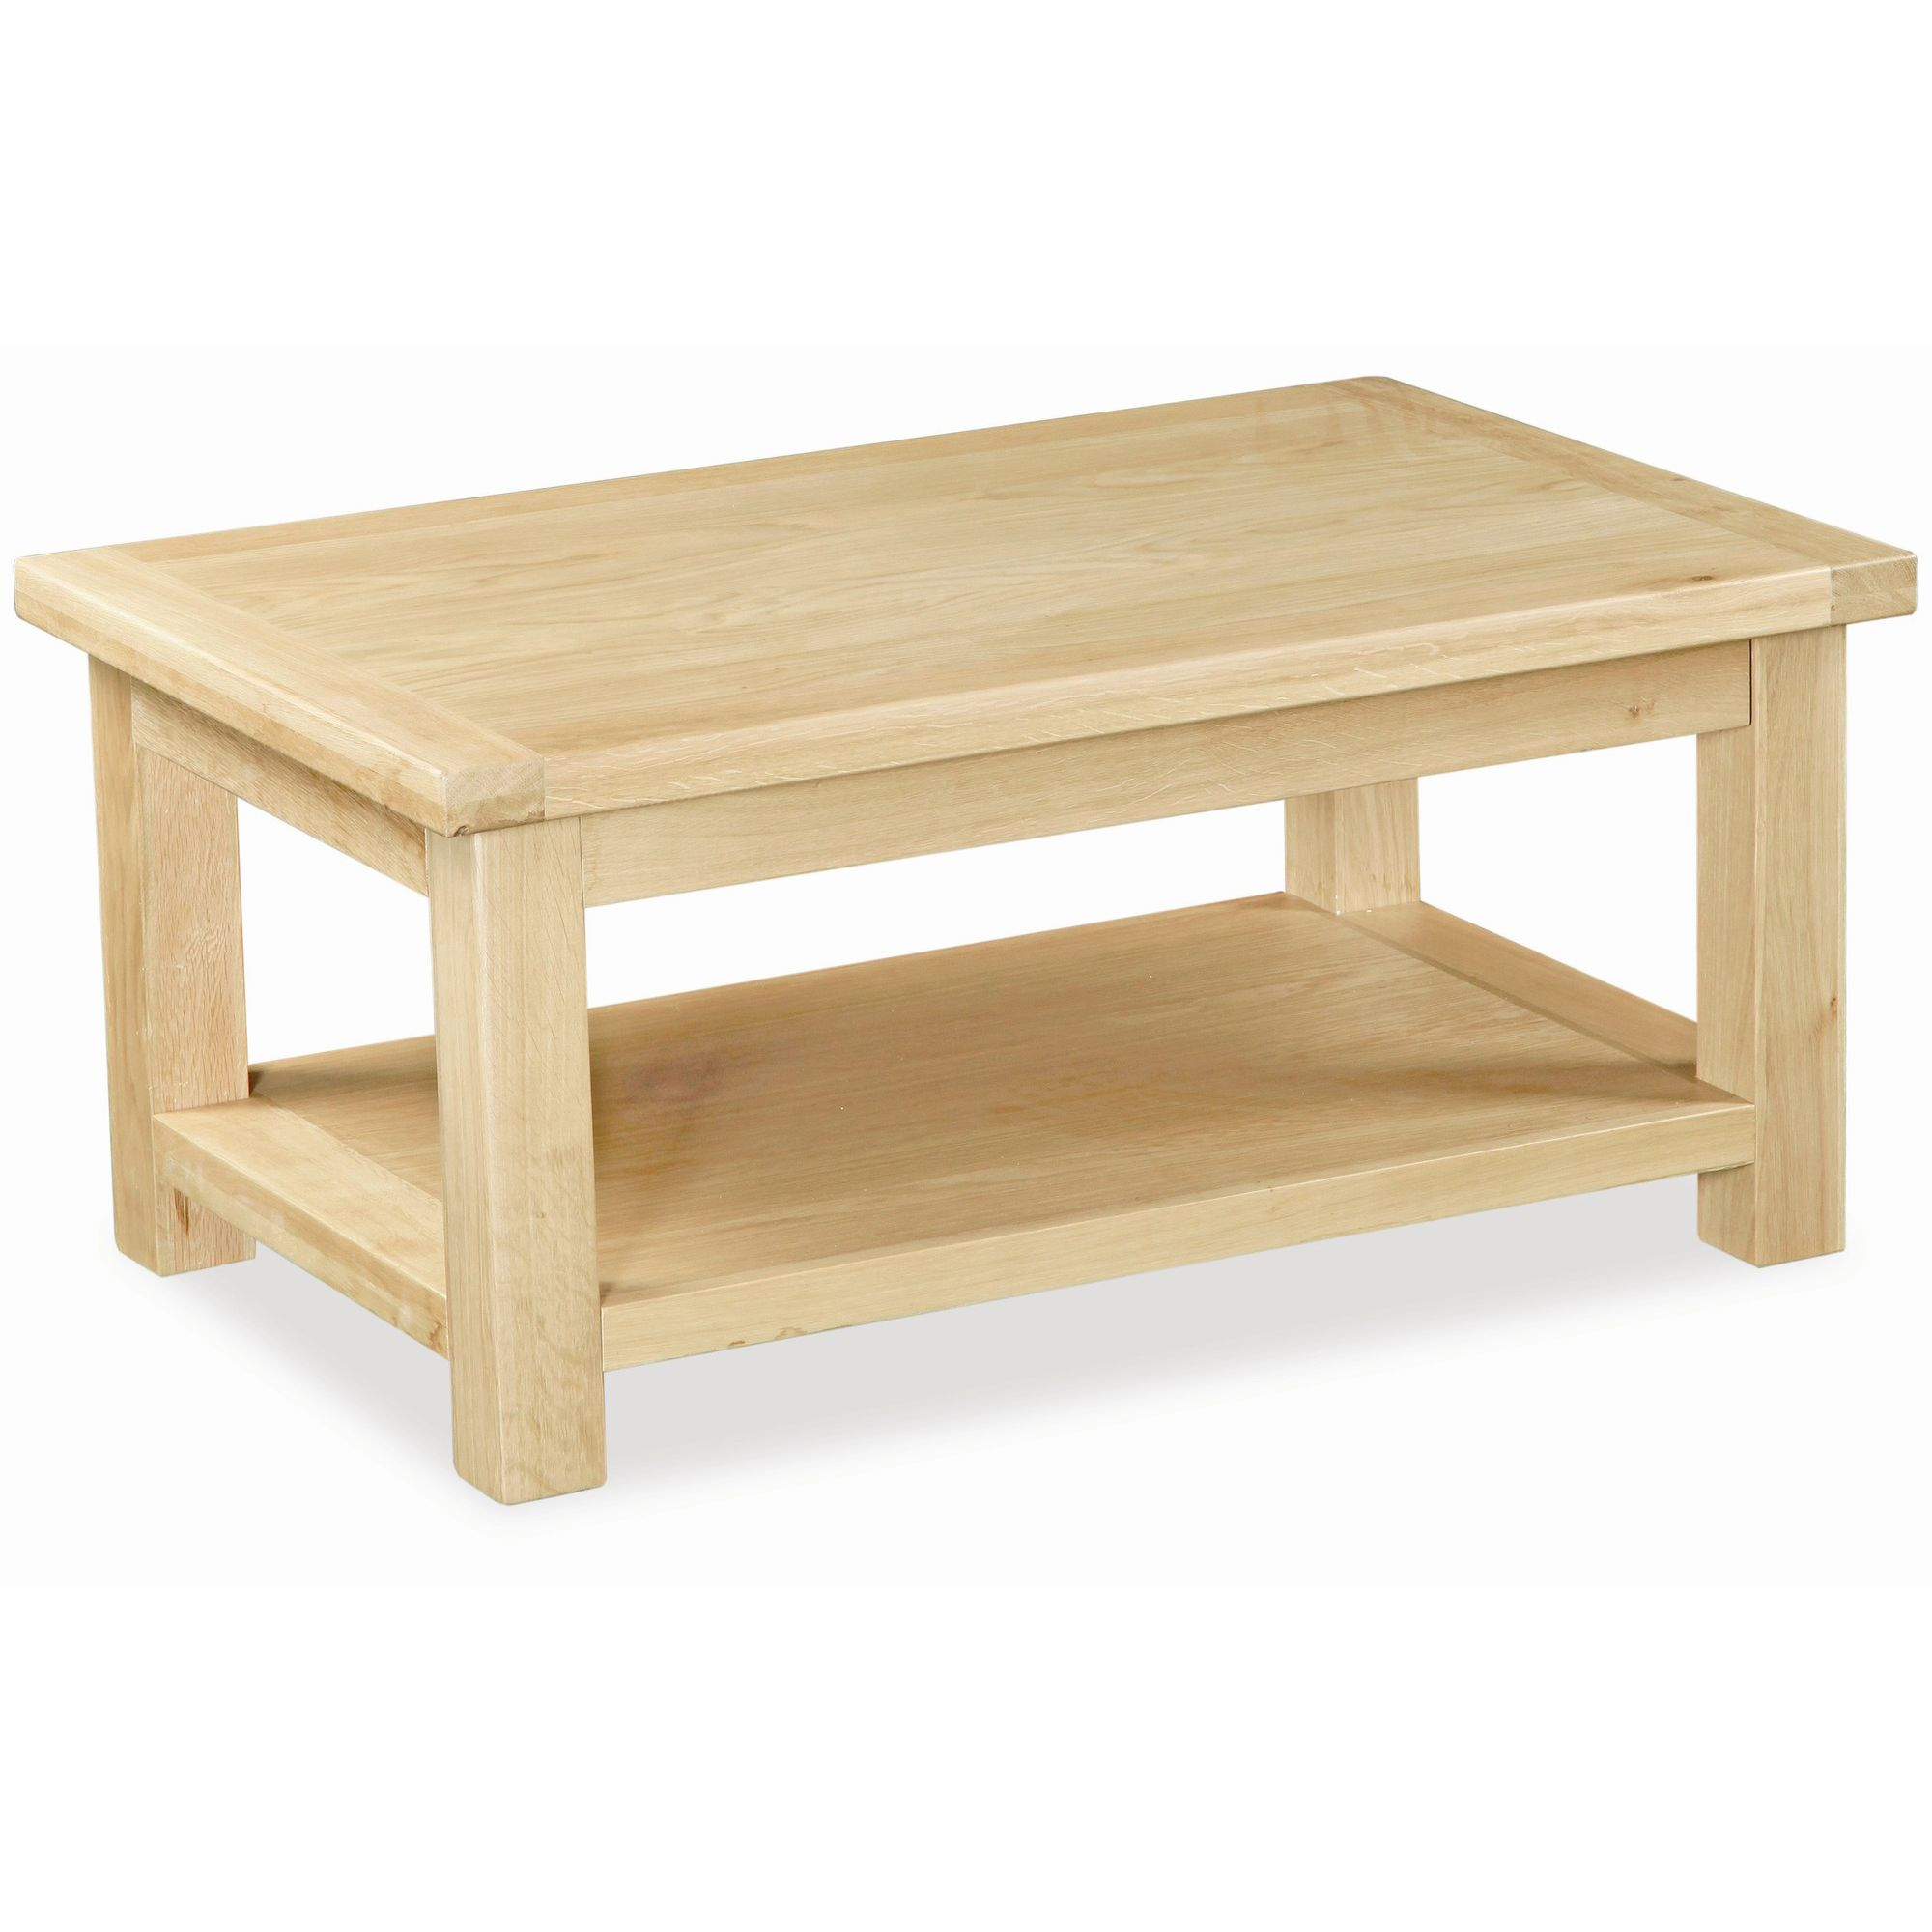 Alterton Furniture Chatsworth Large Coffee Table at Tesco Direct